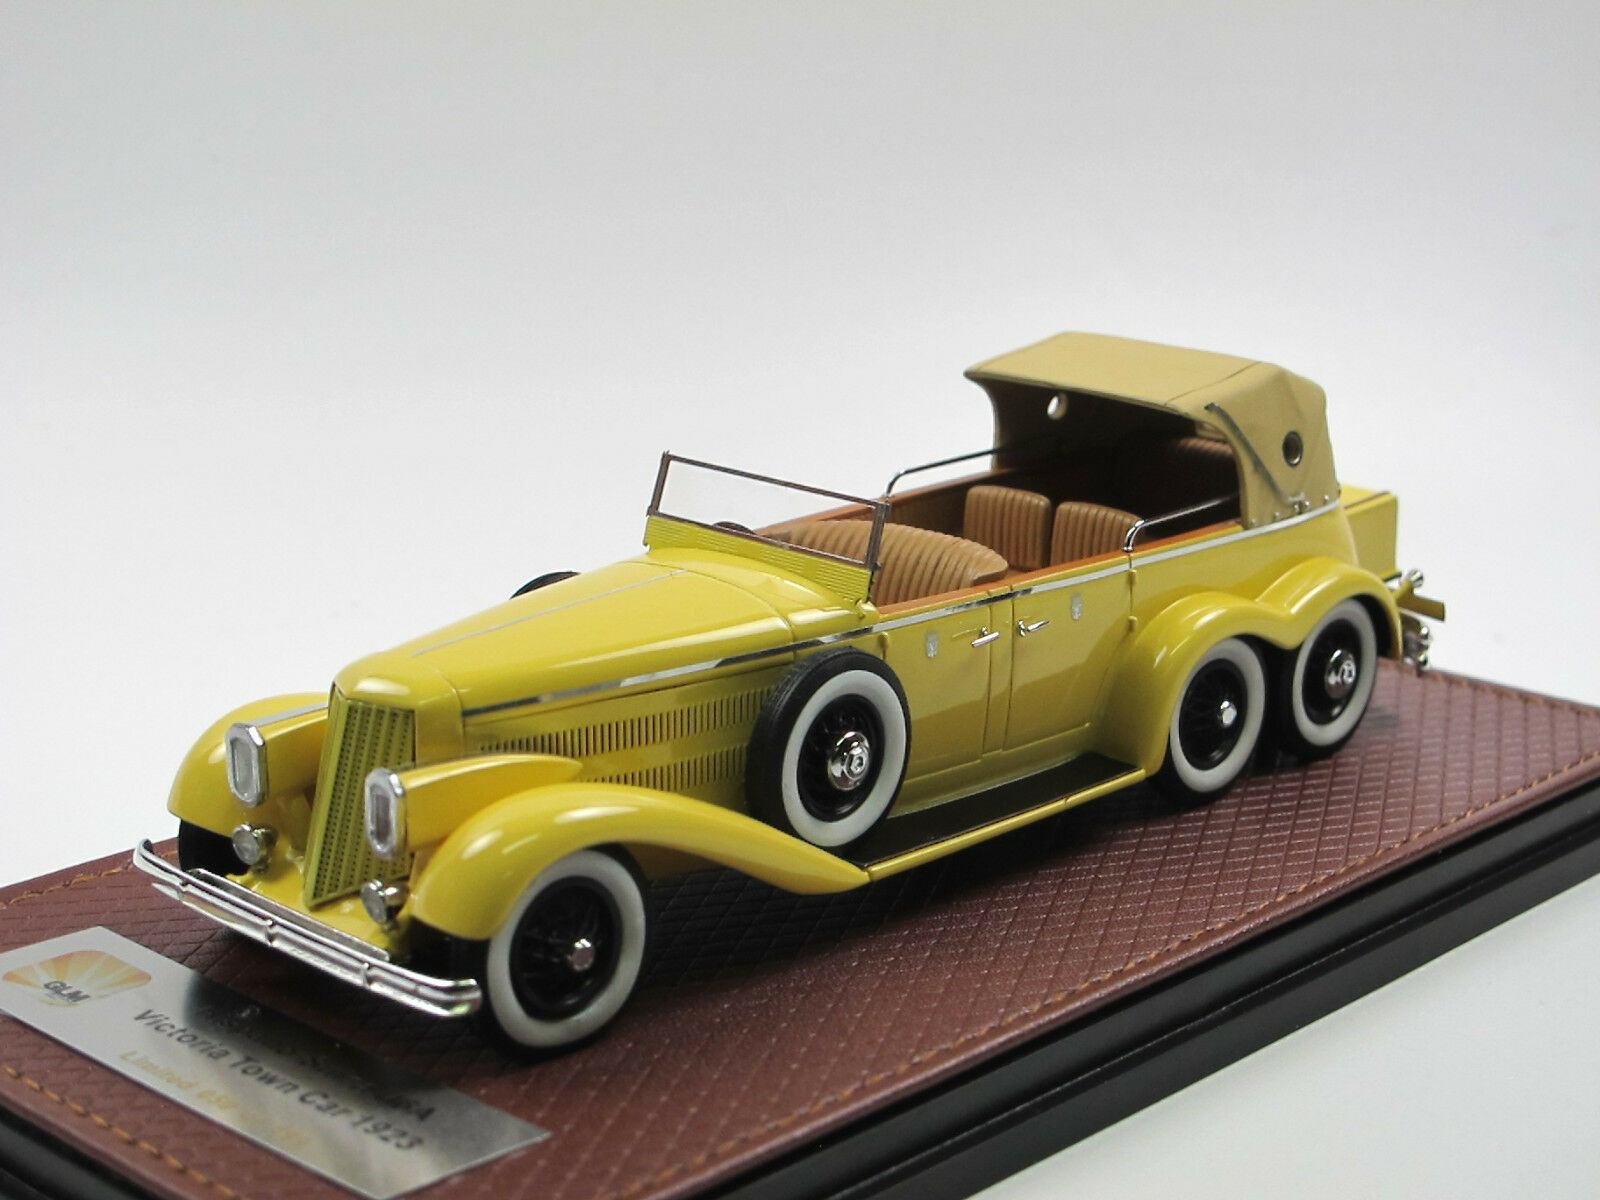 colorways incredibili GLM 1923 Hispano-Suiza h6a h6a h6a Victoria 6-Rueda Town auto closed Coupe de Ville 1 43  ultimi stili